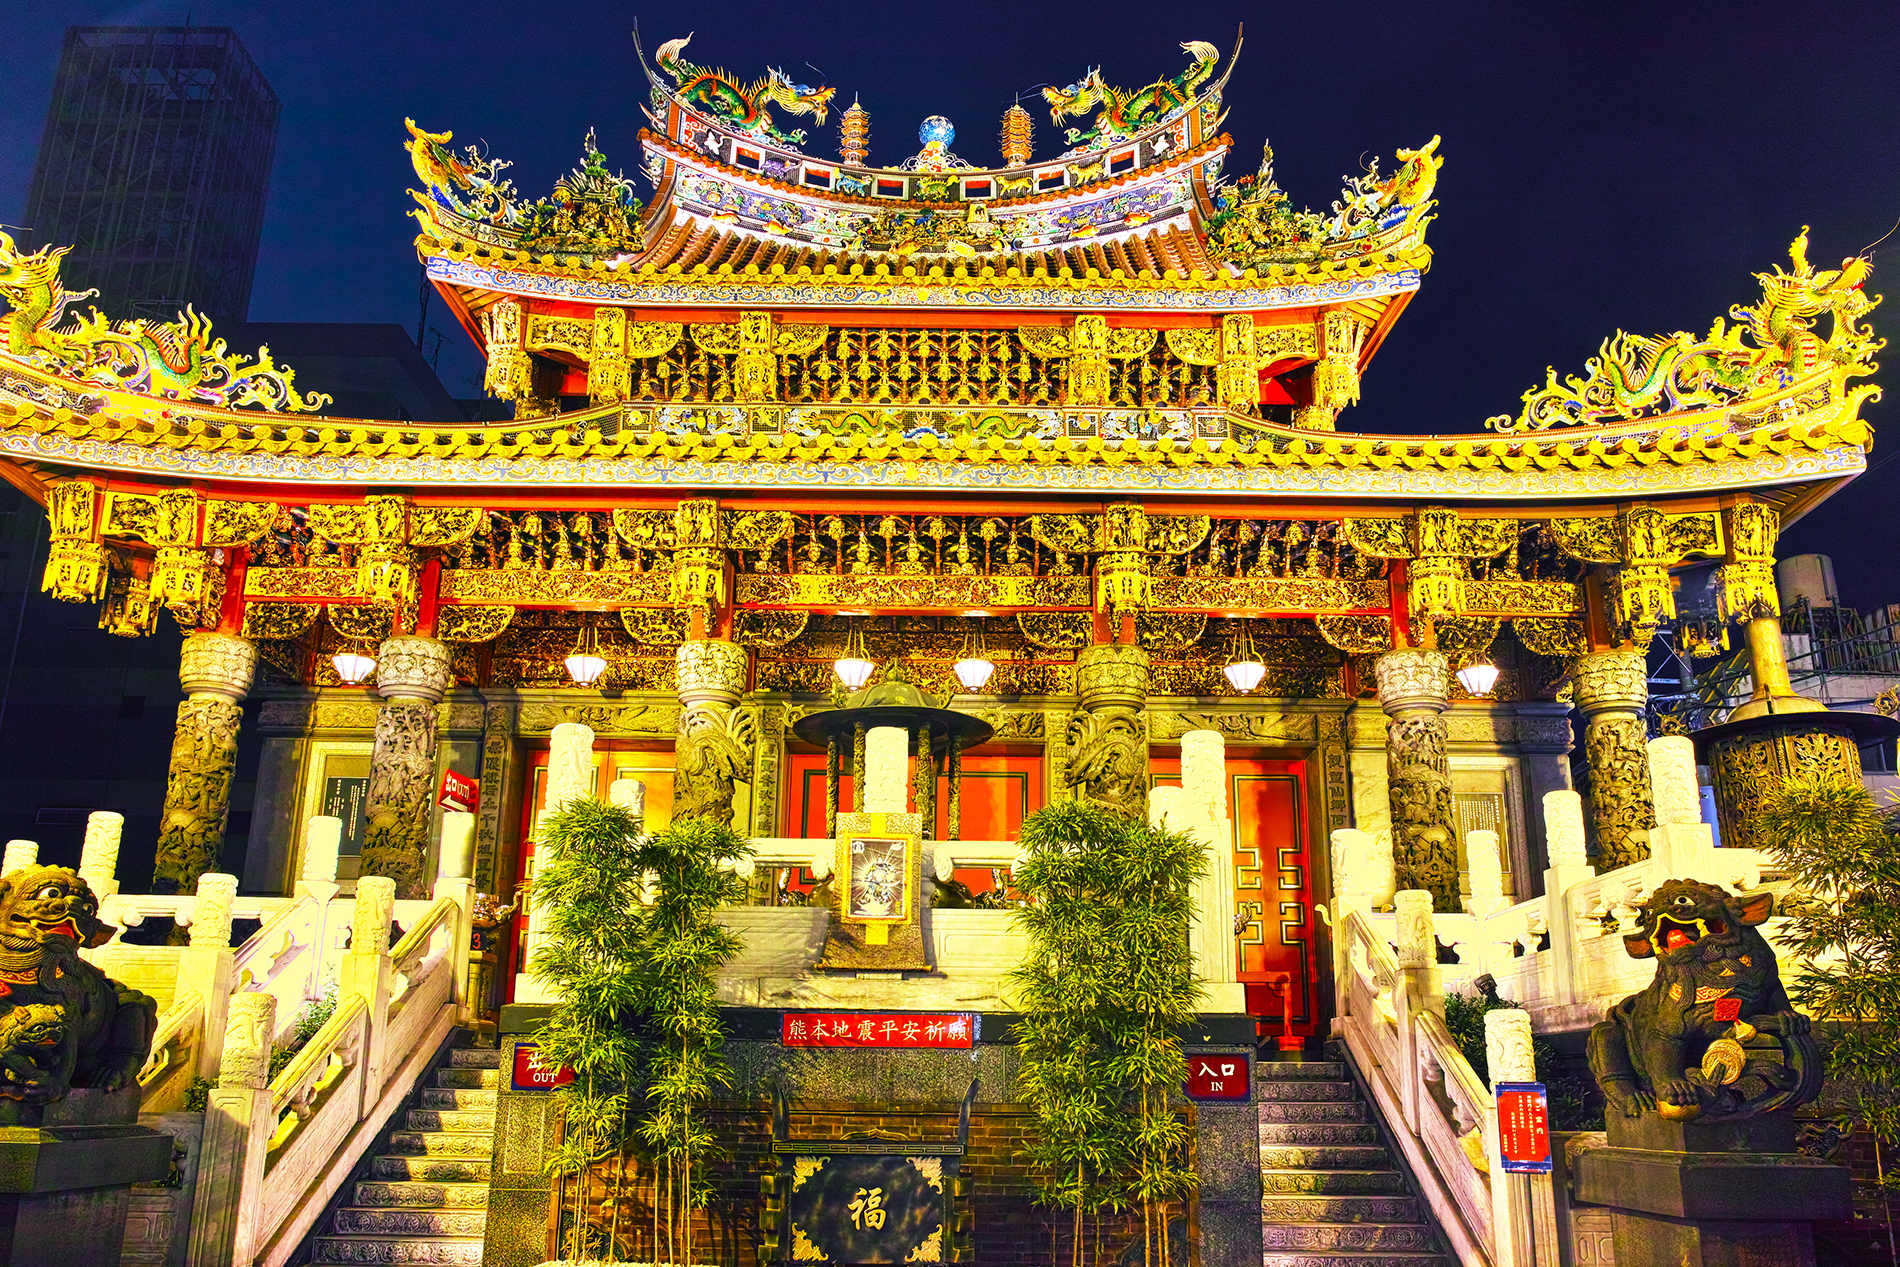 The magnificent temple at night 53652